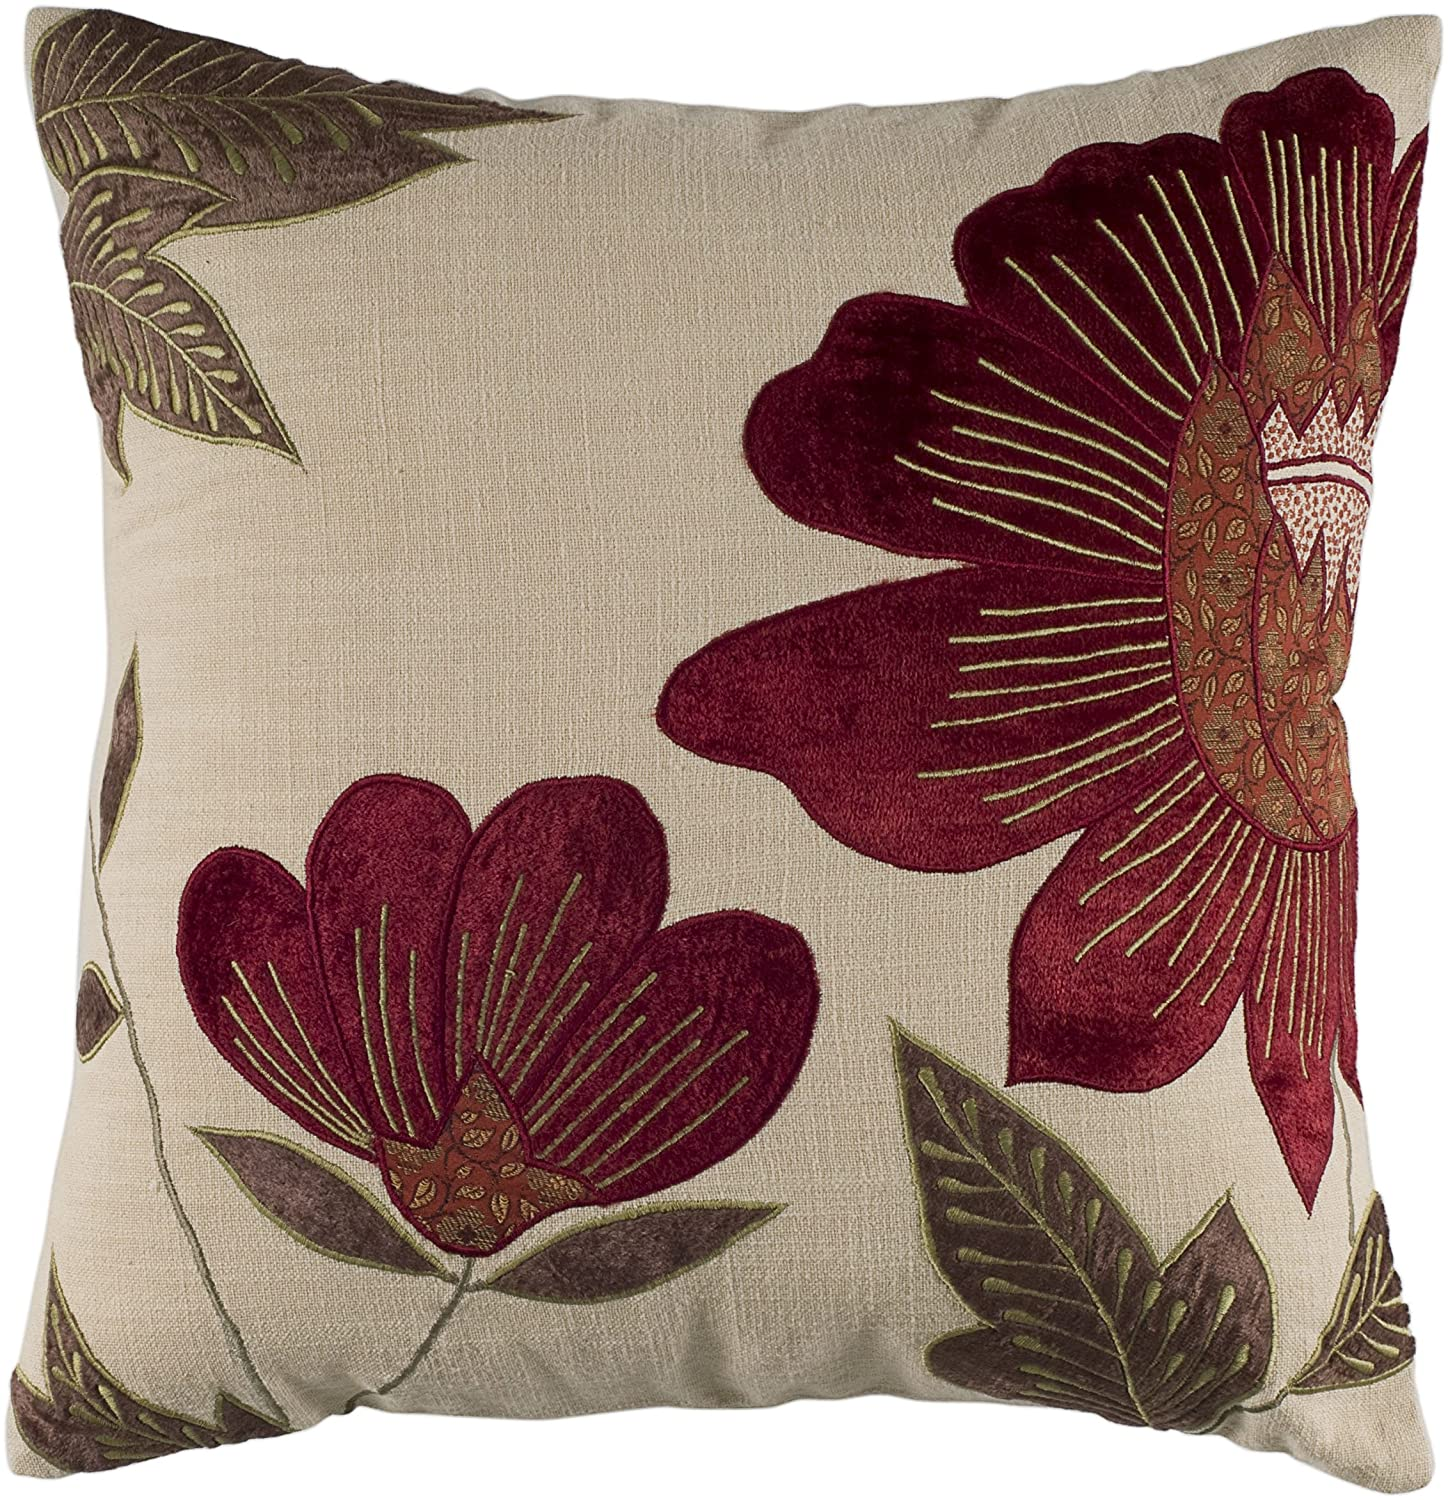 Amazon.com: Rizzy Home T-16 Decorative Pillows, 16 by 16-Inch ...